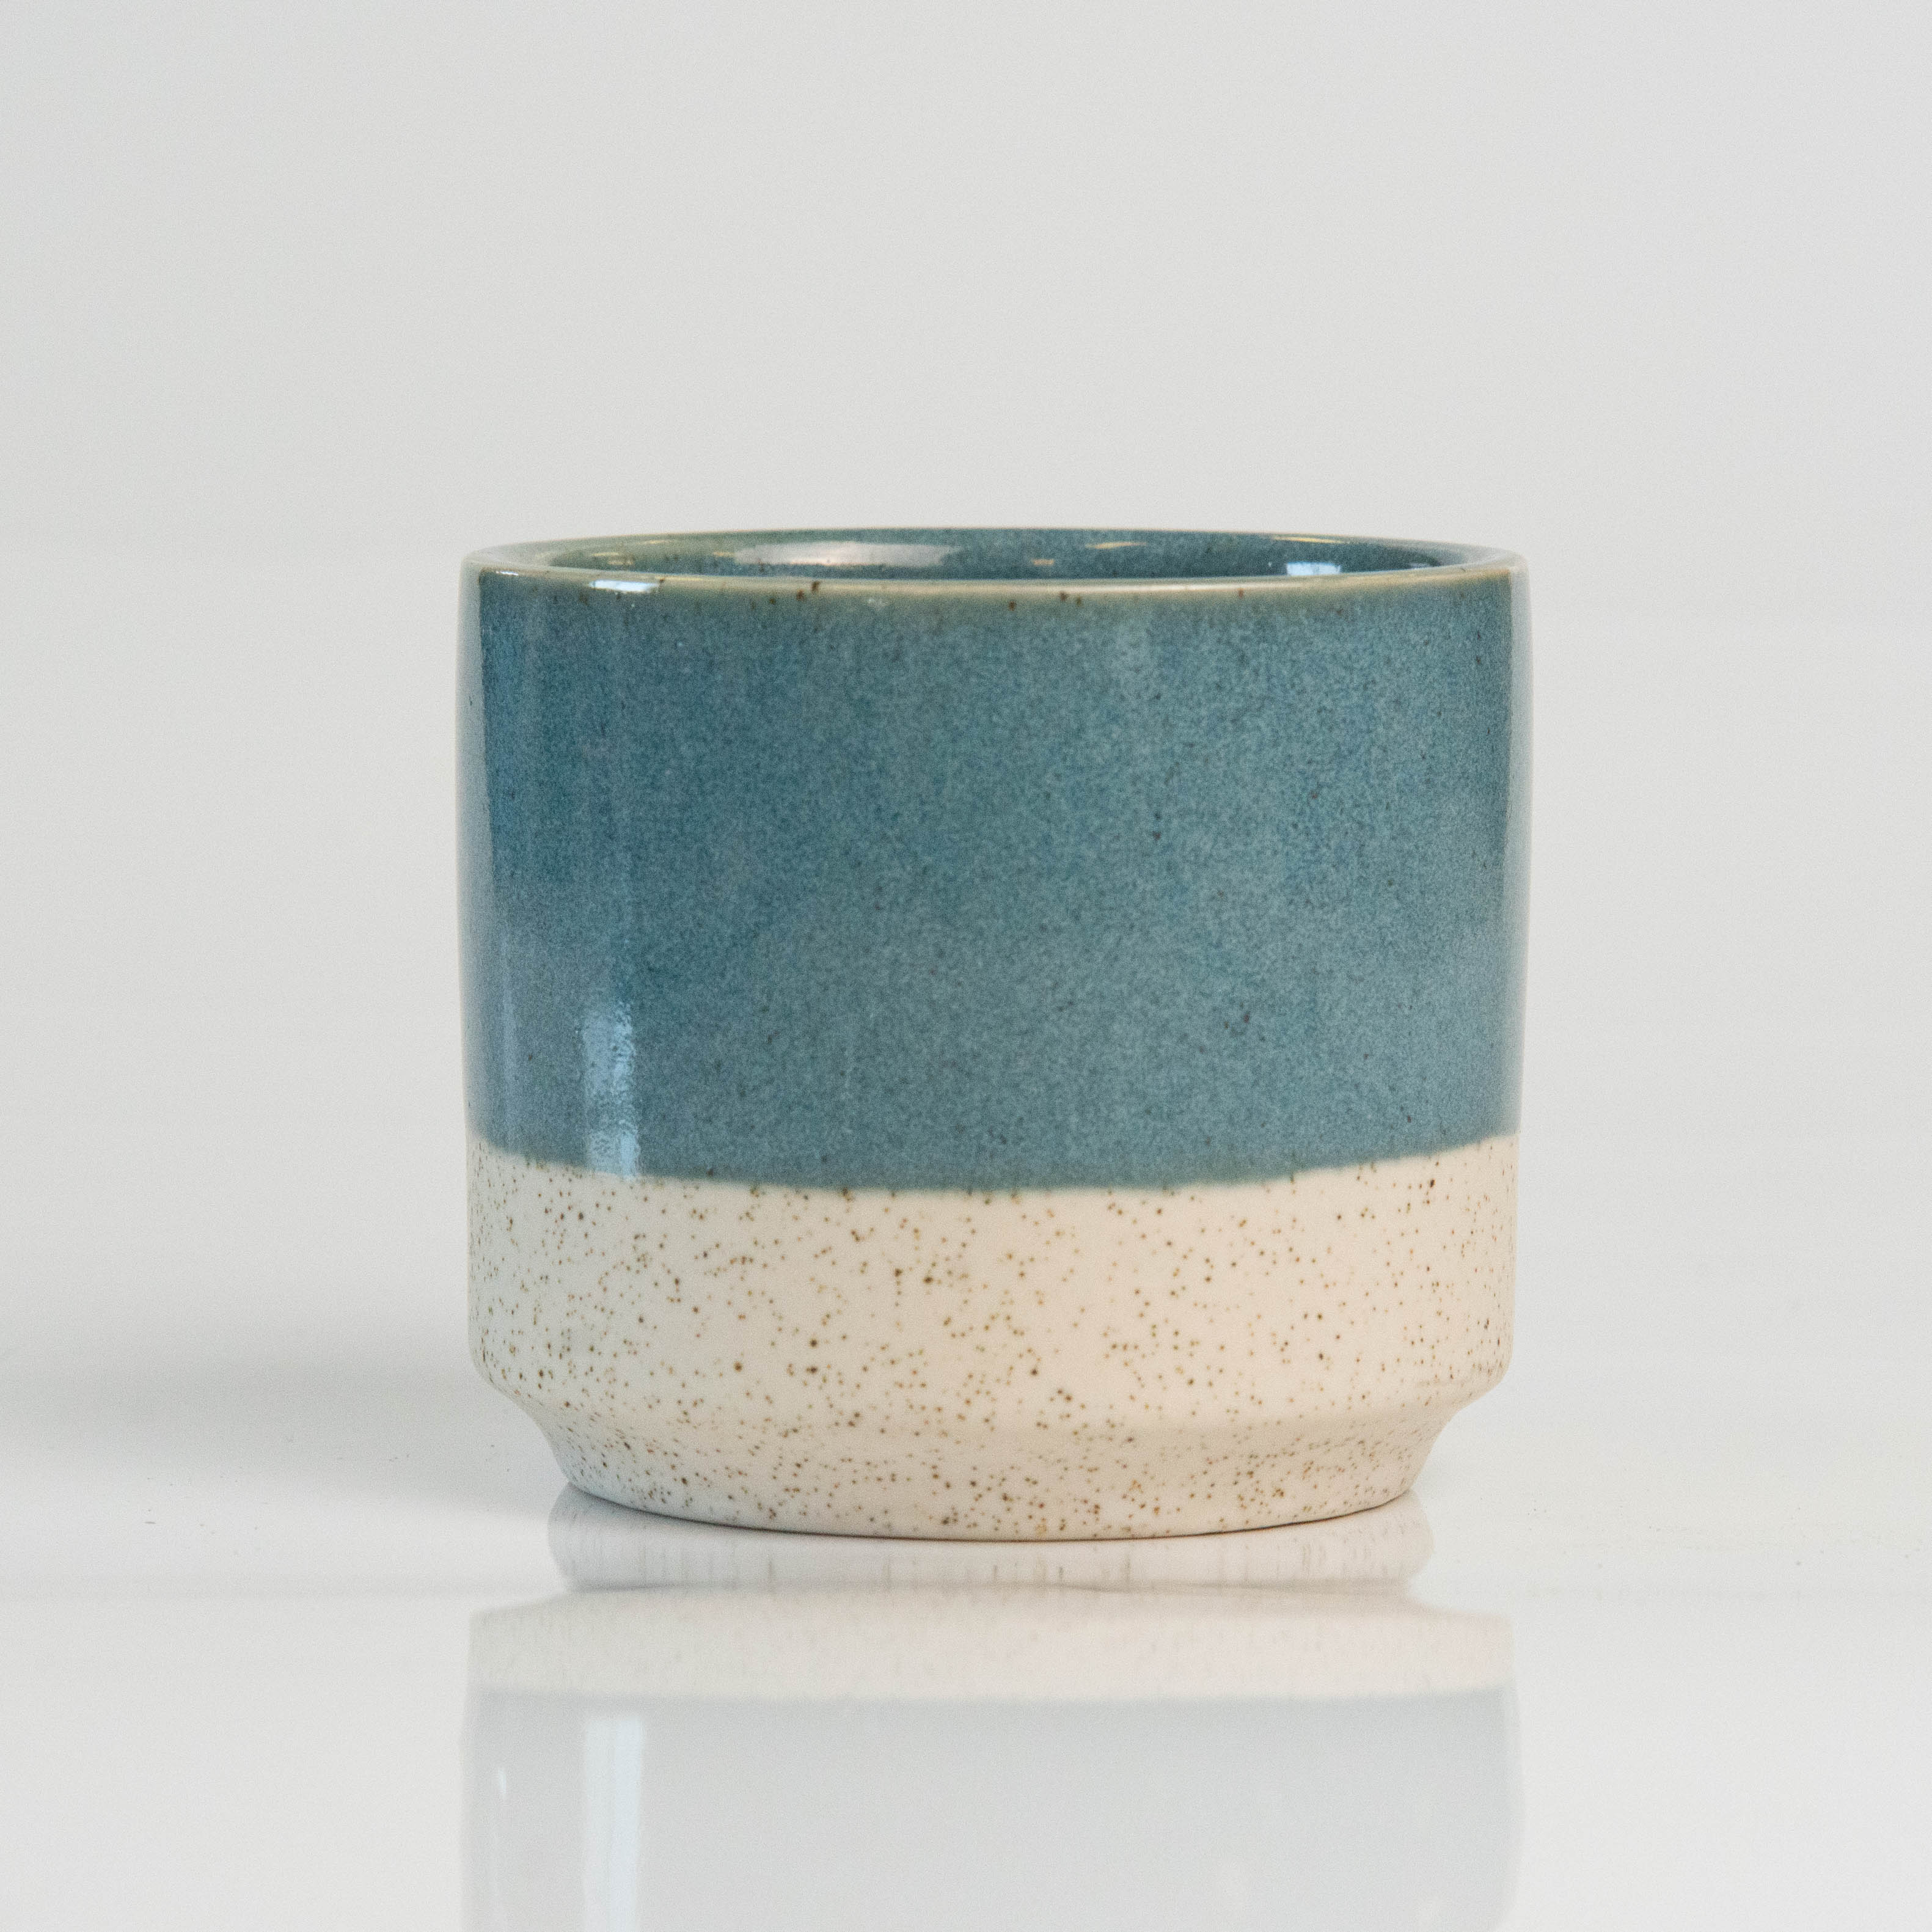 3 Inch Teal Top Ceramic Pot